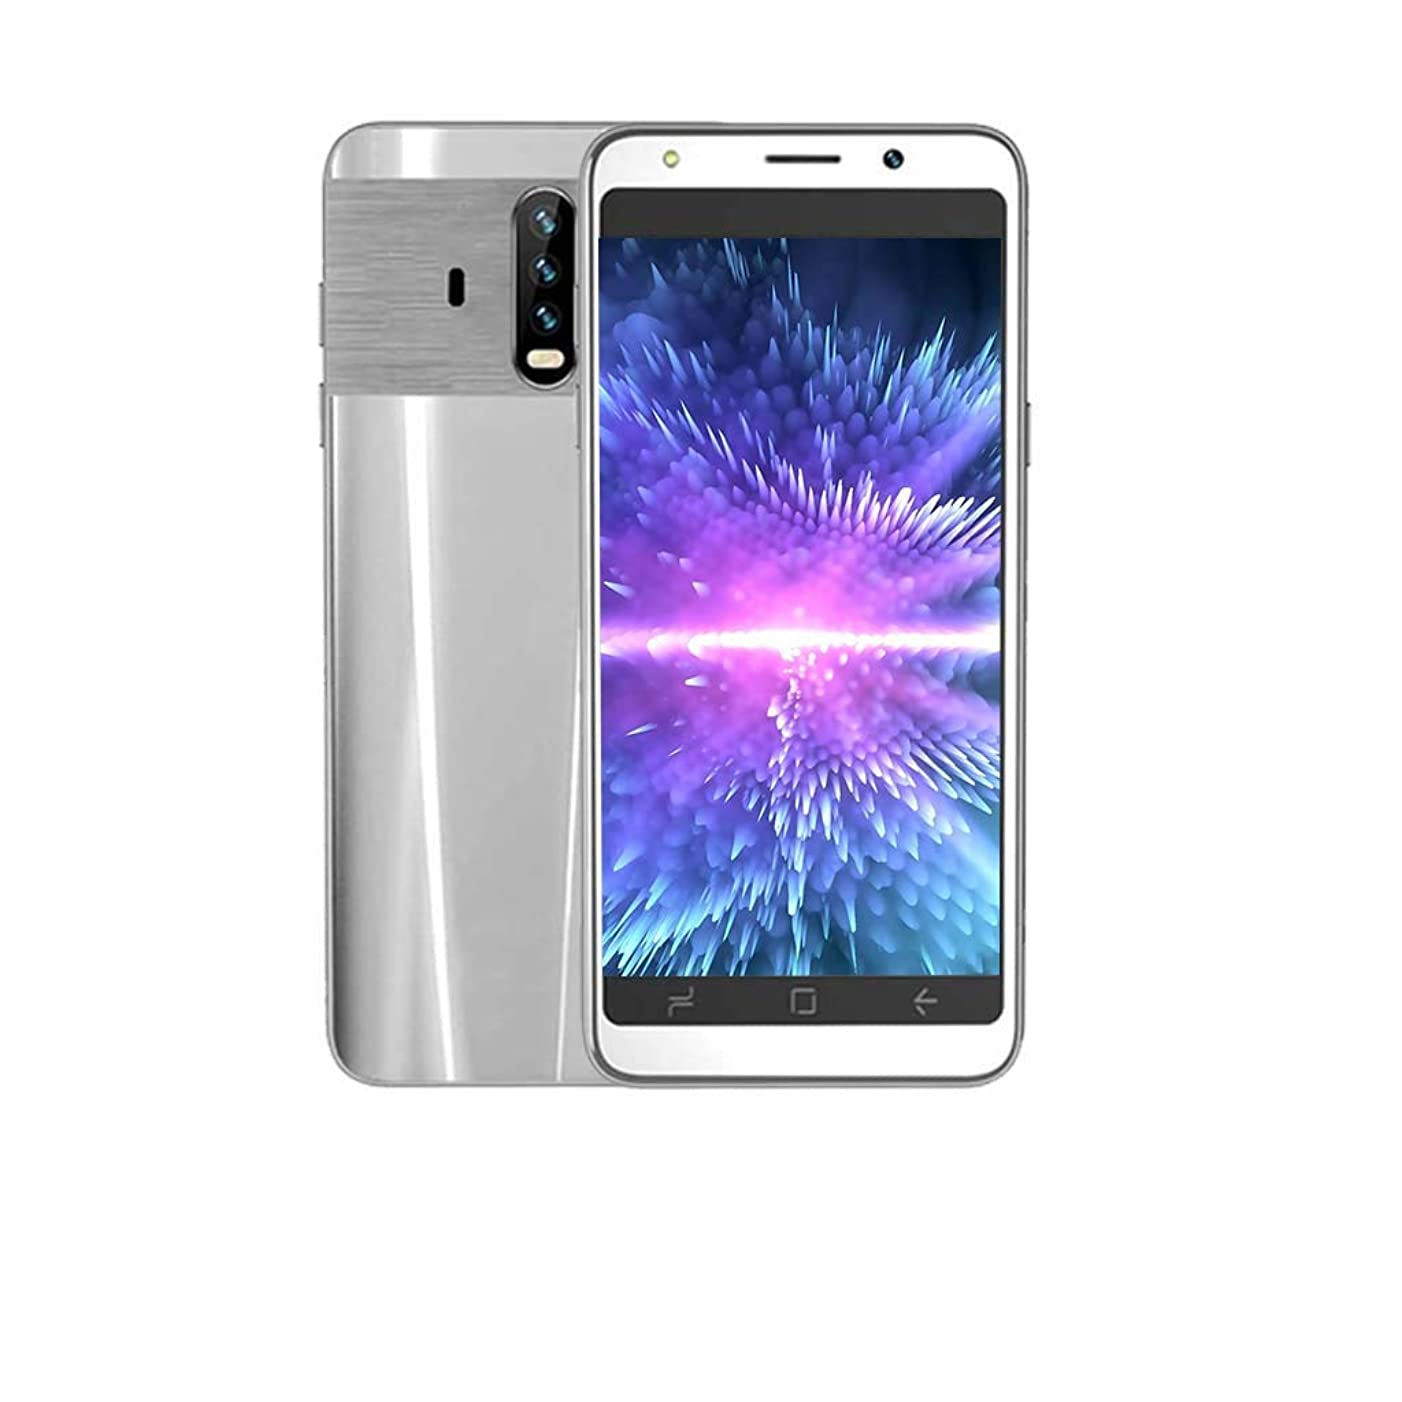 2019 New 5.0 Dual HD Camera Dual-Card Android 5.1 512M+4G GPS 3G Call Mobile Phone Smartphone Unlocked (Silver)